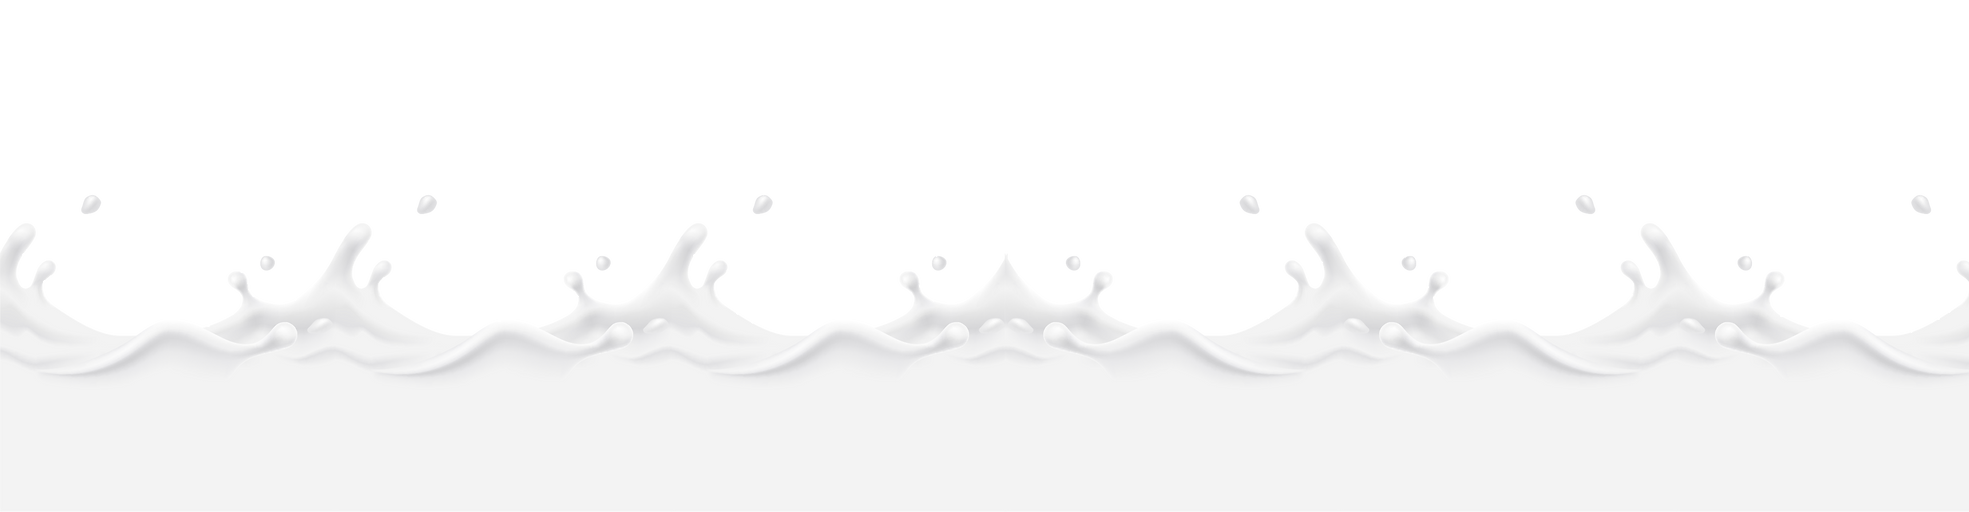 Milk-Splash.png